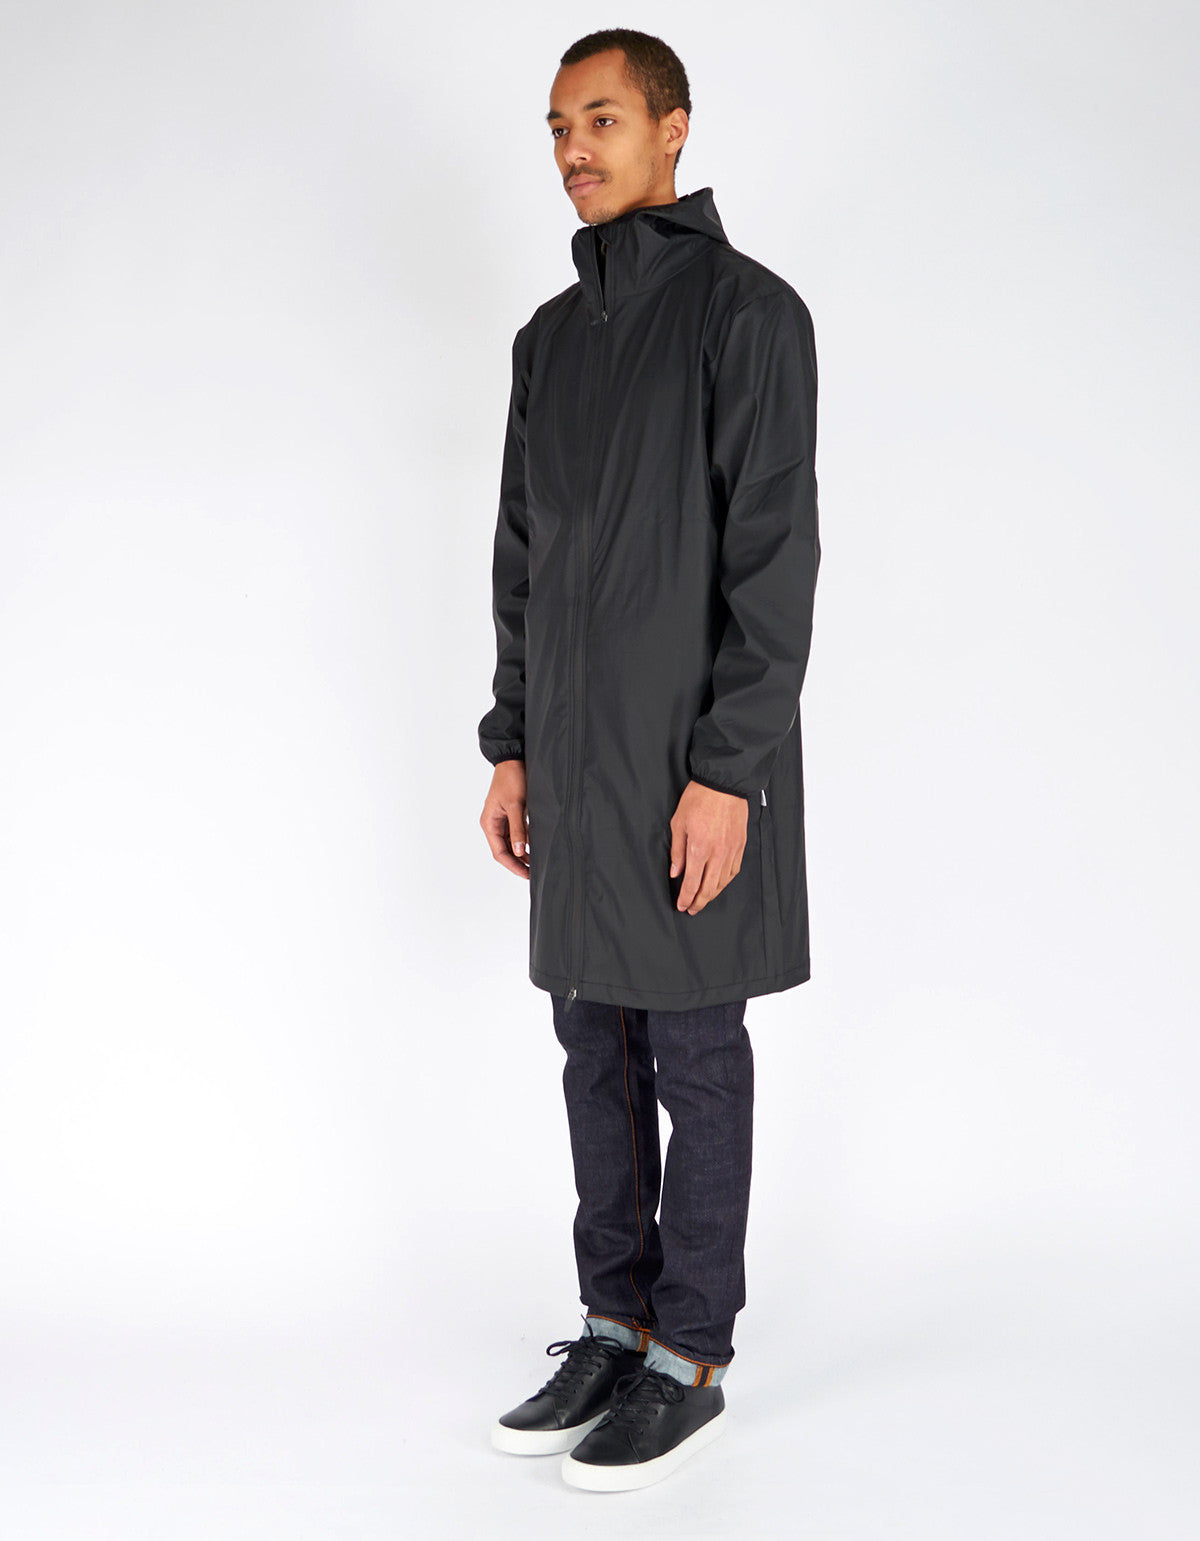 Rains Men's Base Jacket Long Black - Still Life - 3